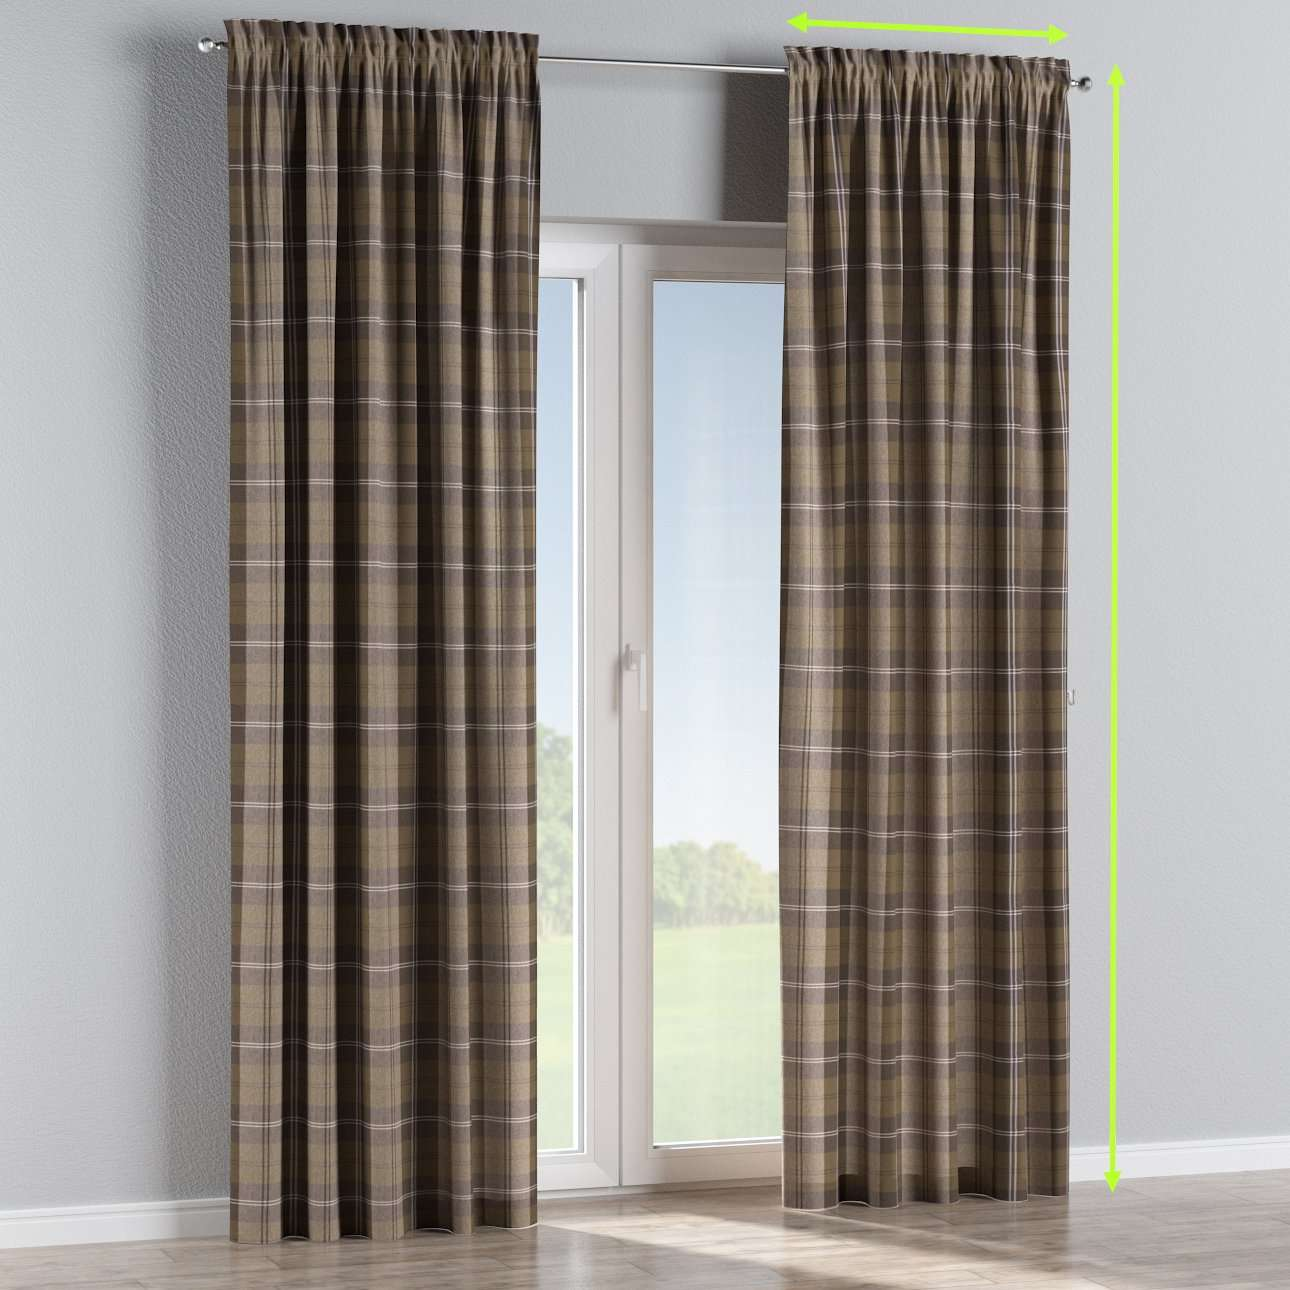 Slot and frill curtains in collection Edinburgh , fabric: 115-76